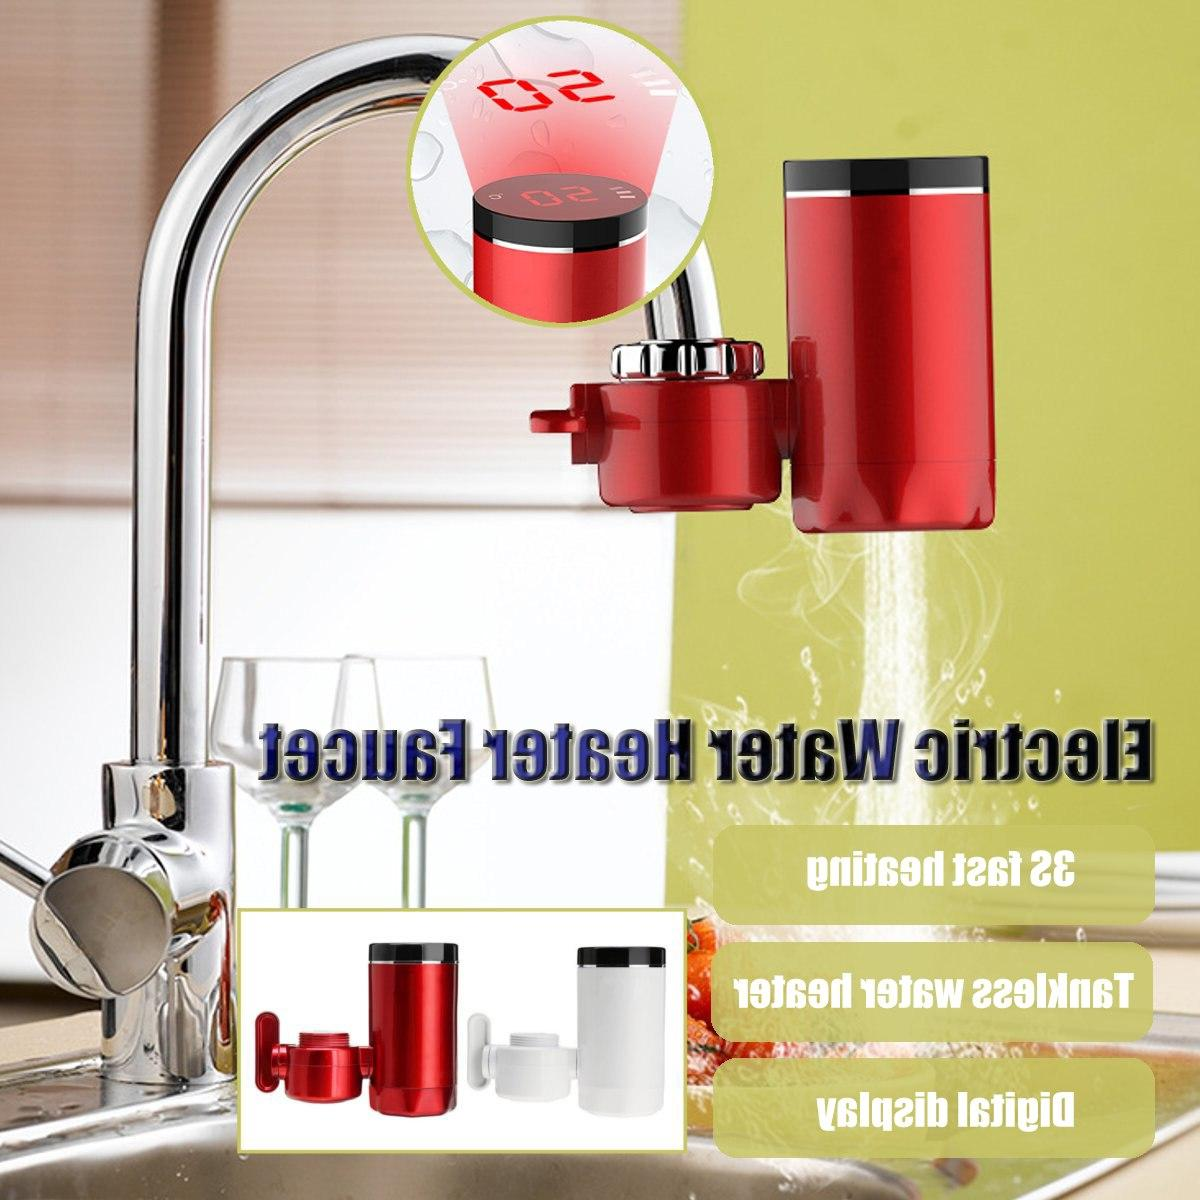 Kitchen Instant Hot <font><b>Water</b></font> 3000W LCD Display <font><b>Water</b></font> <font><b>Heater</b></font> Electric Heating Tap